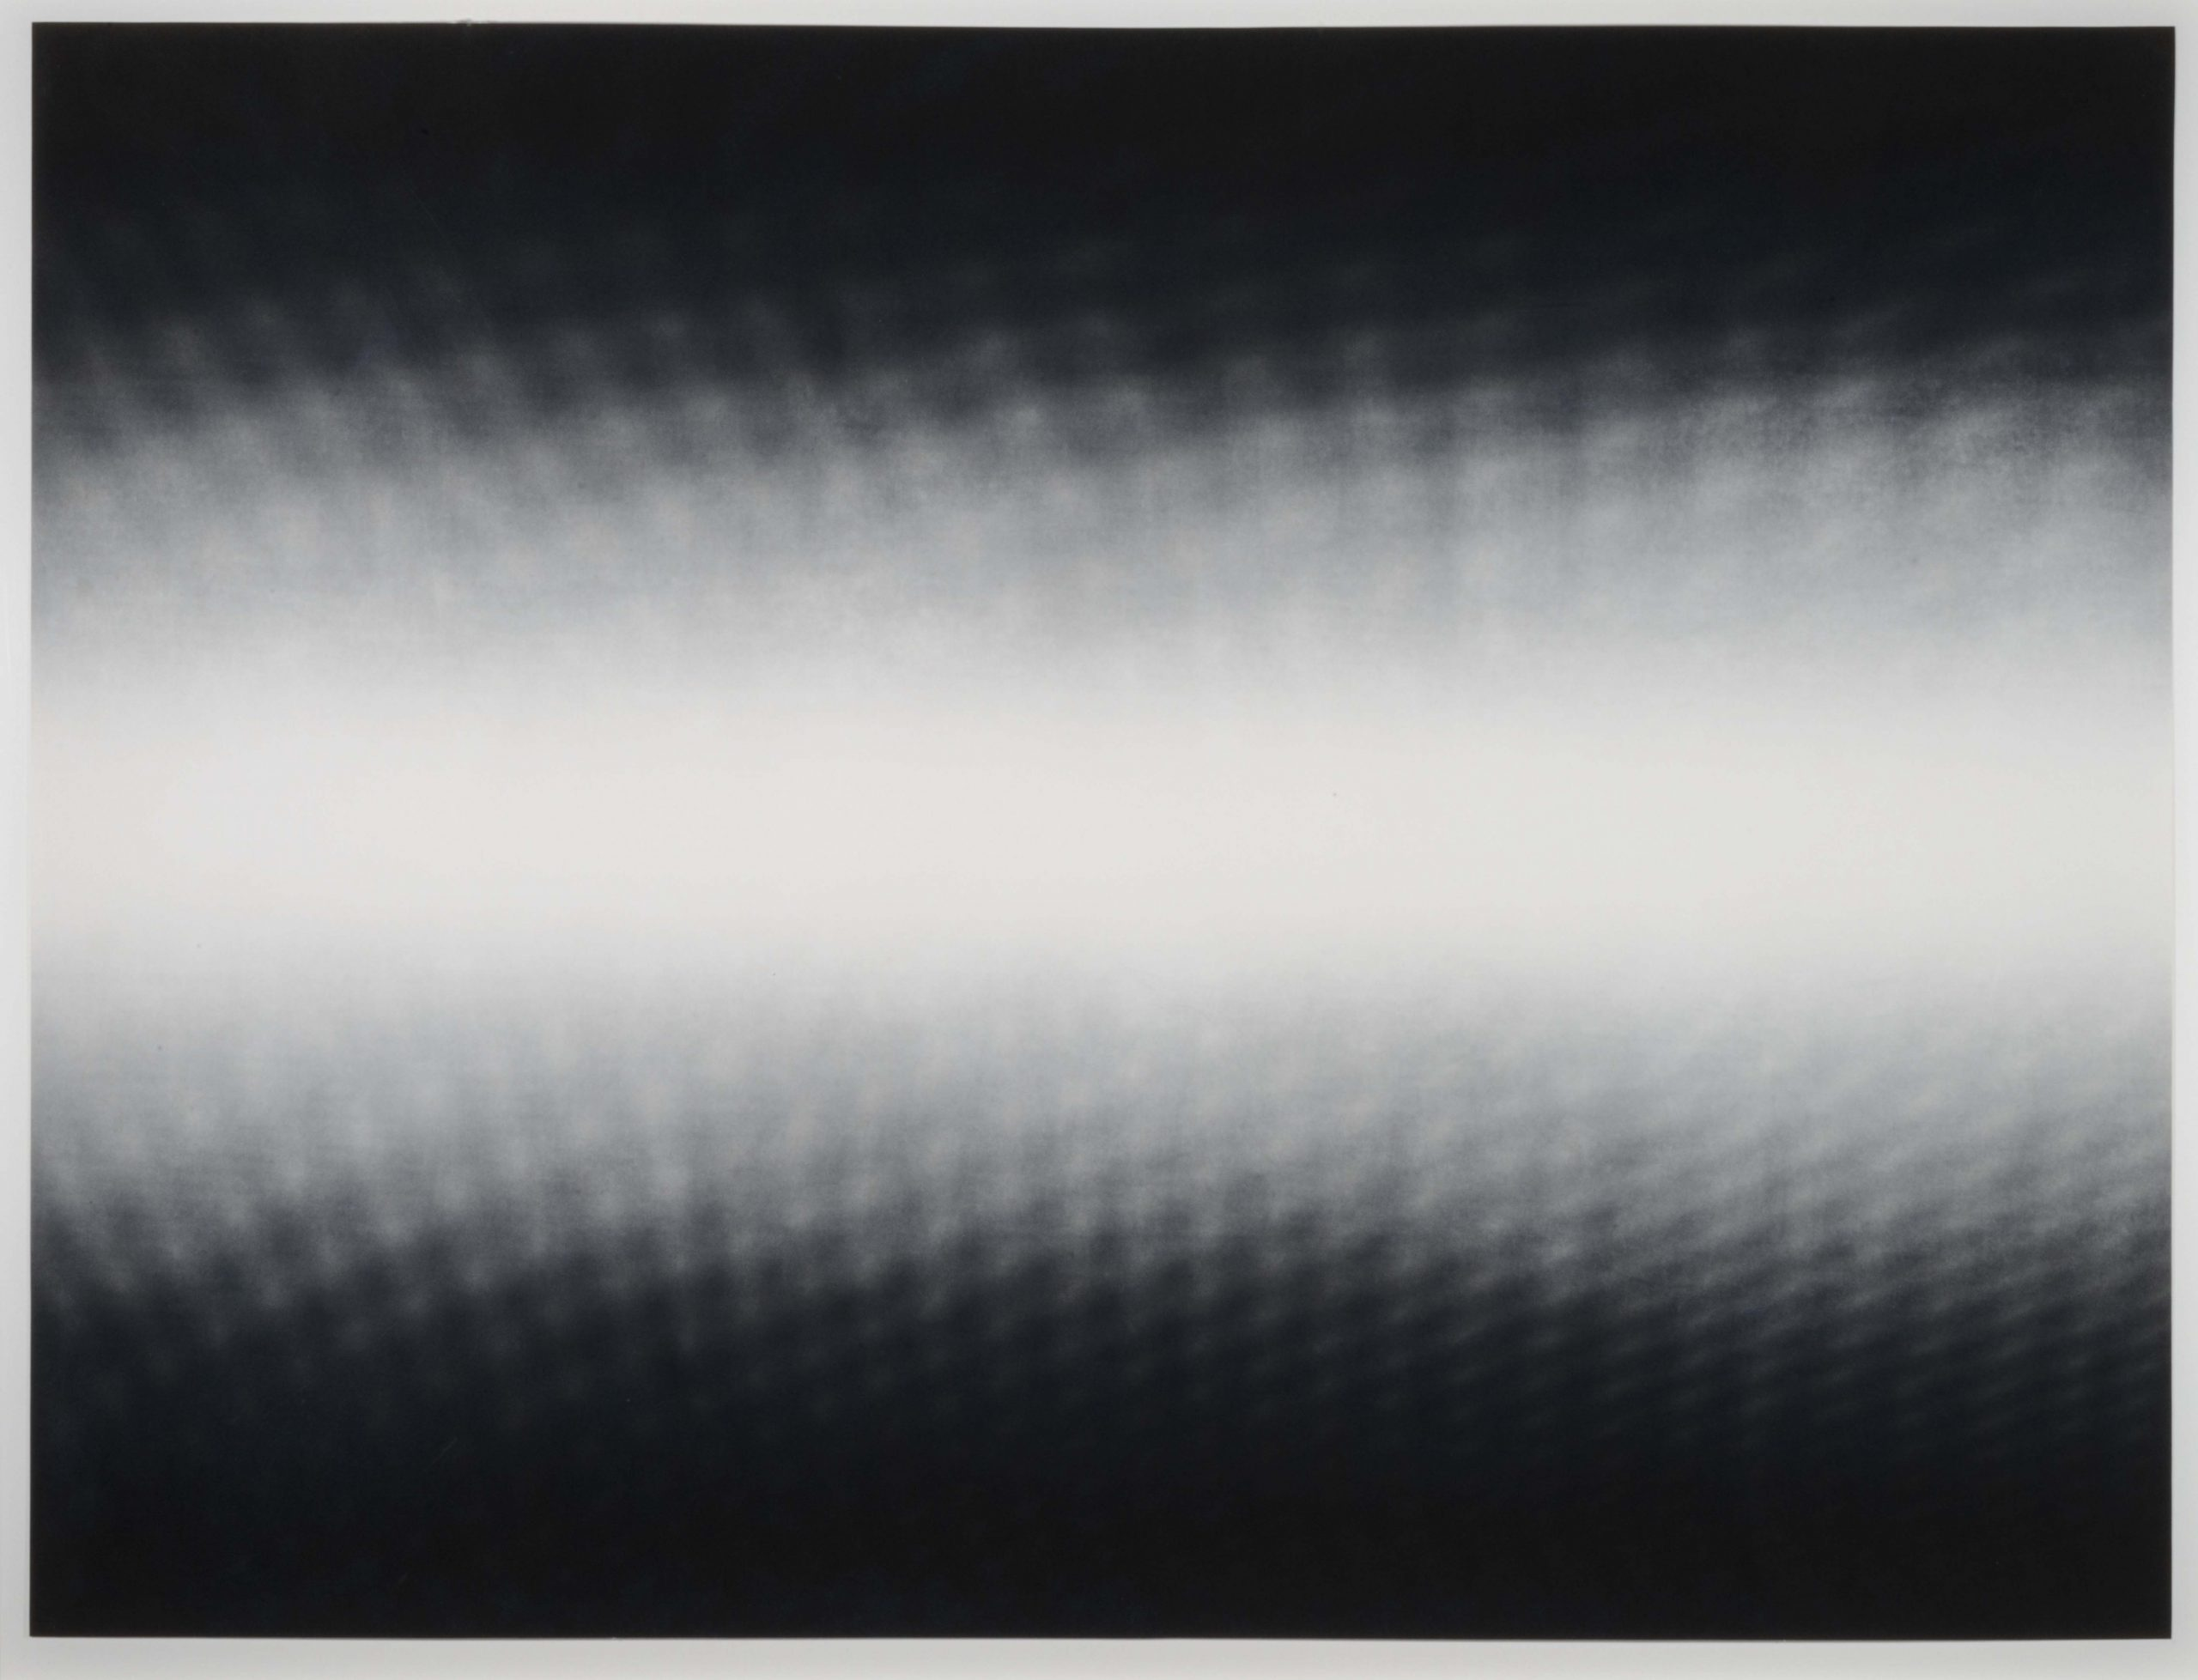 Untitled (2), from Shadow III by Anish Kapoor